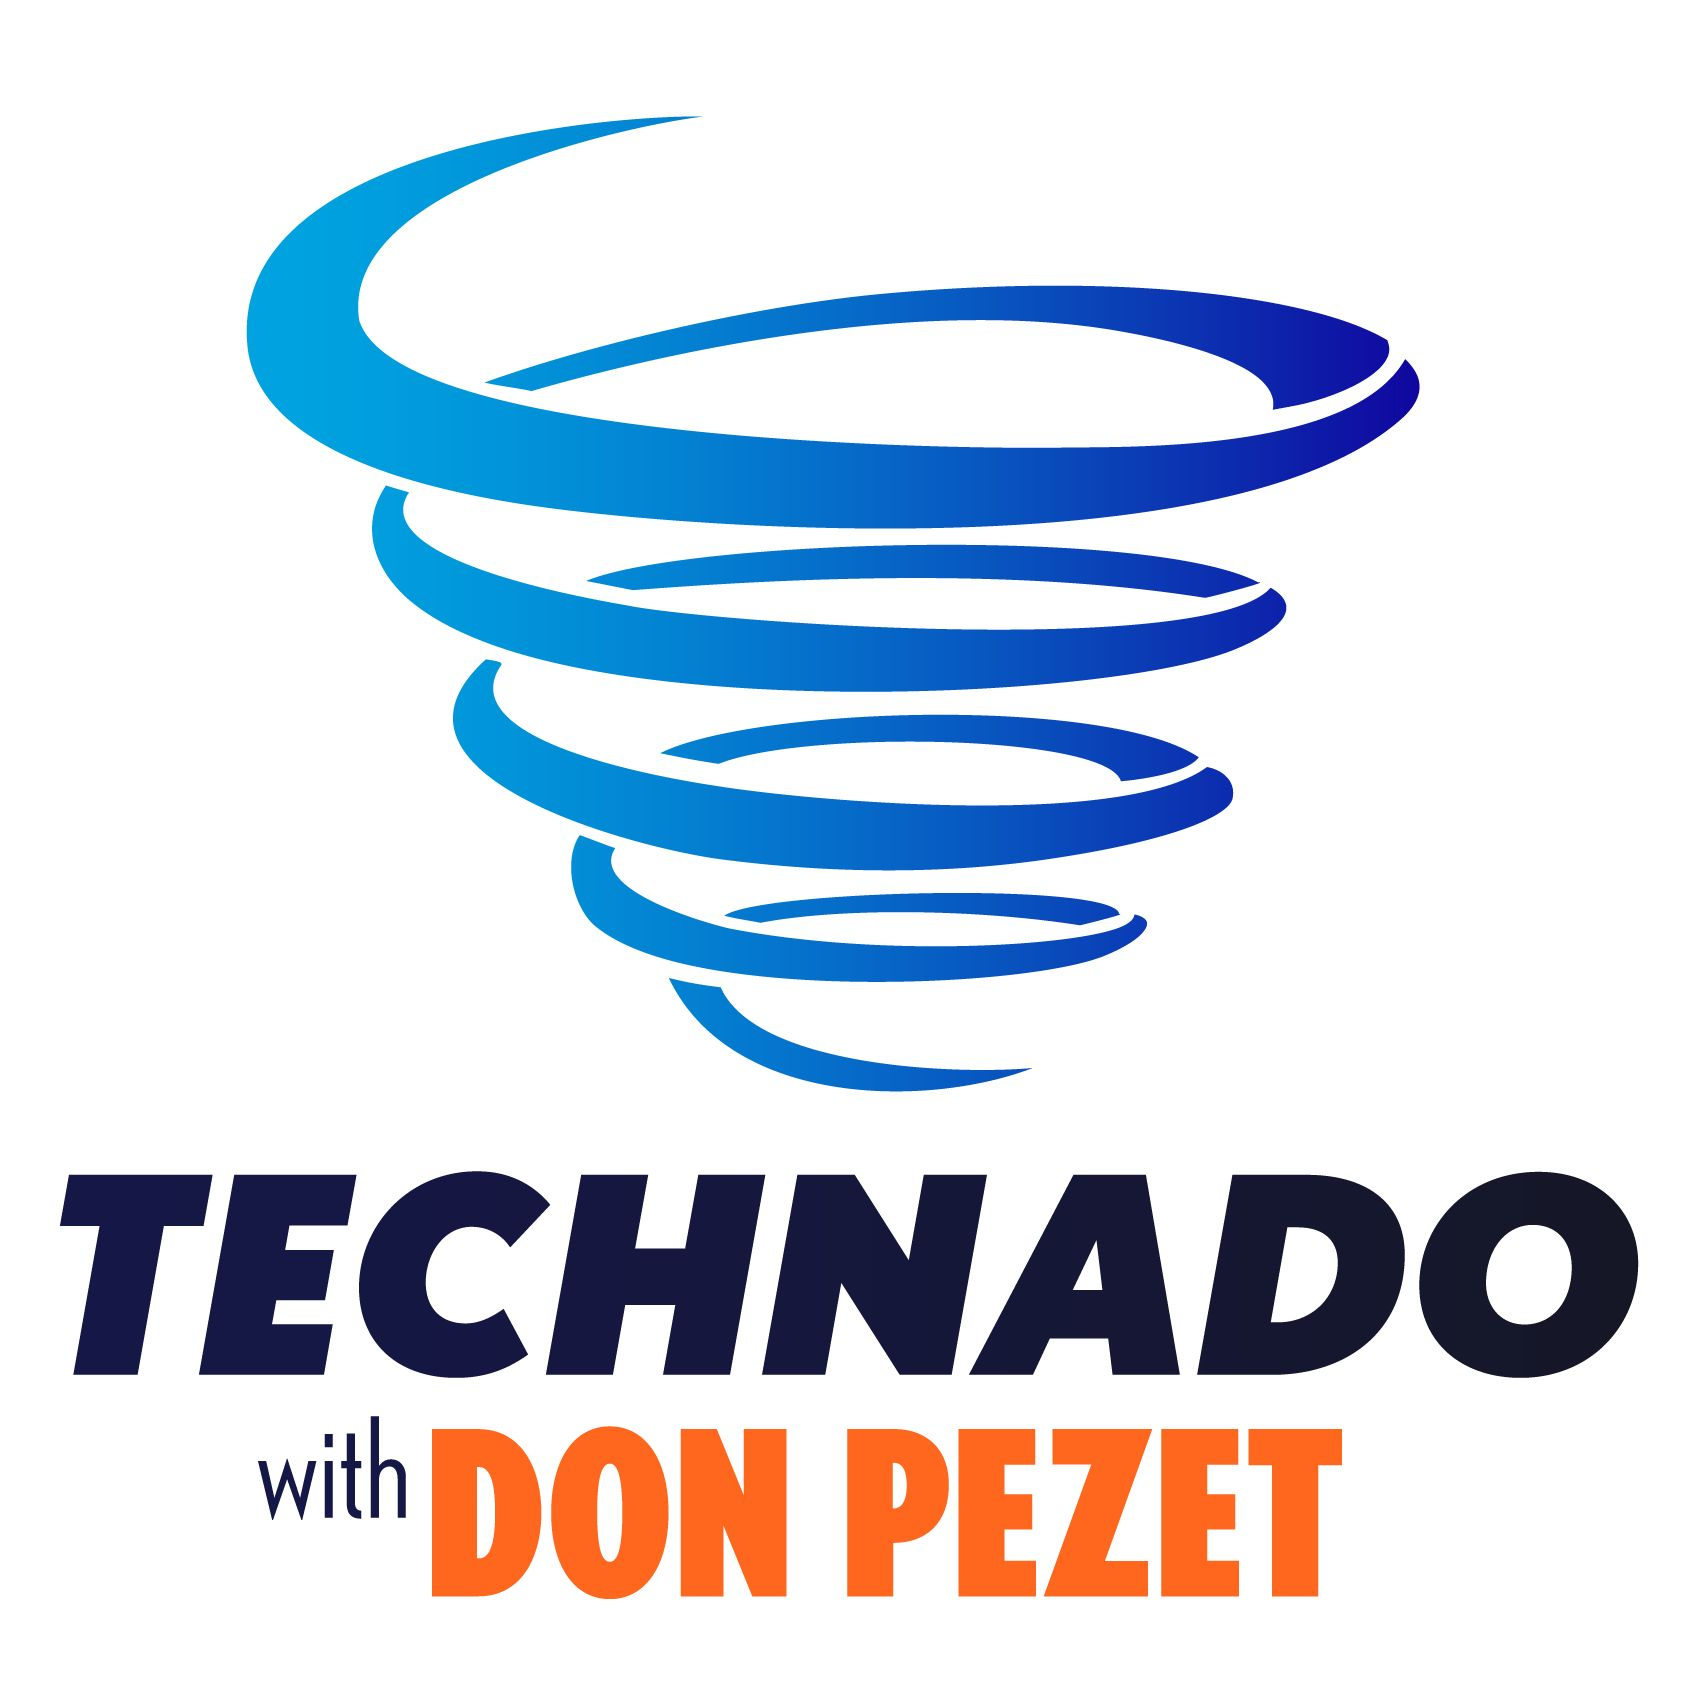 Technado with Don Pezet